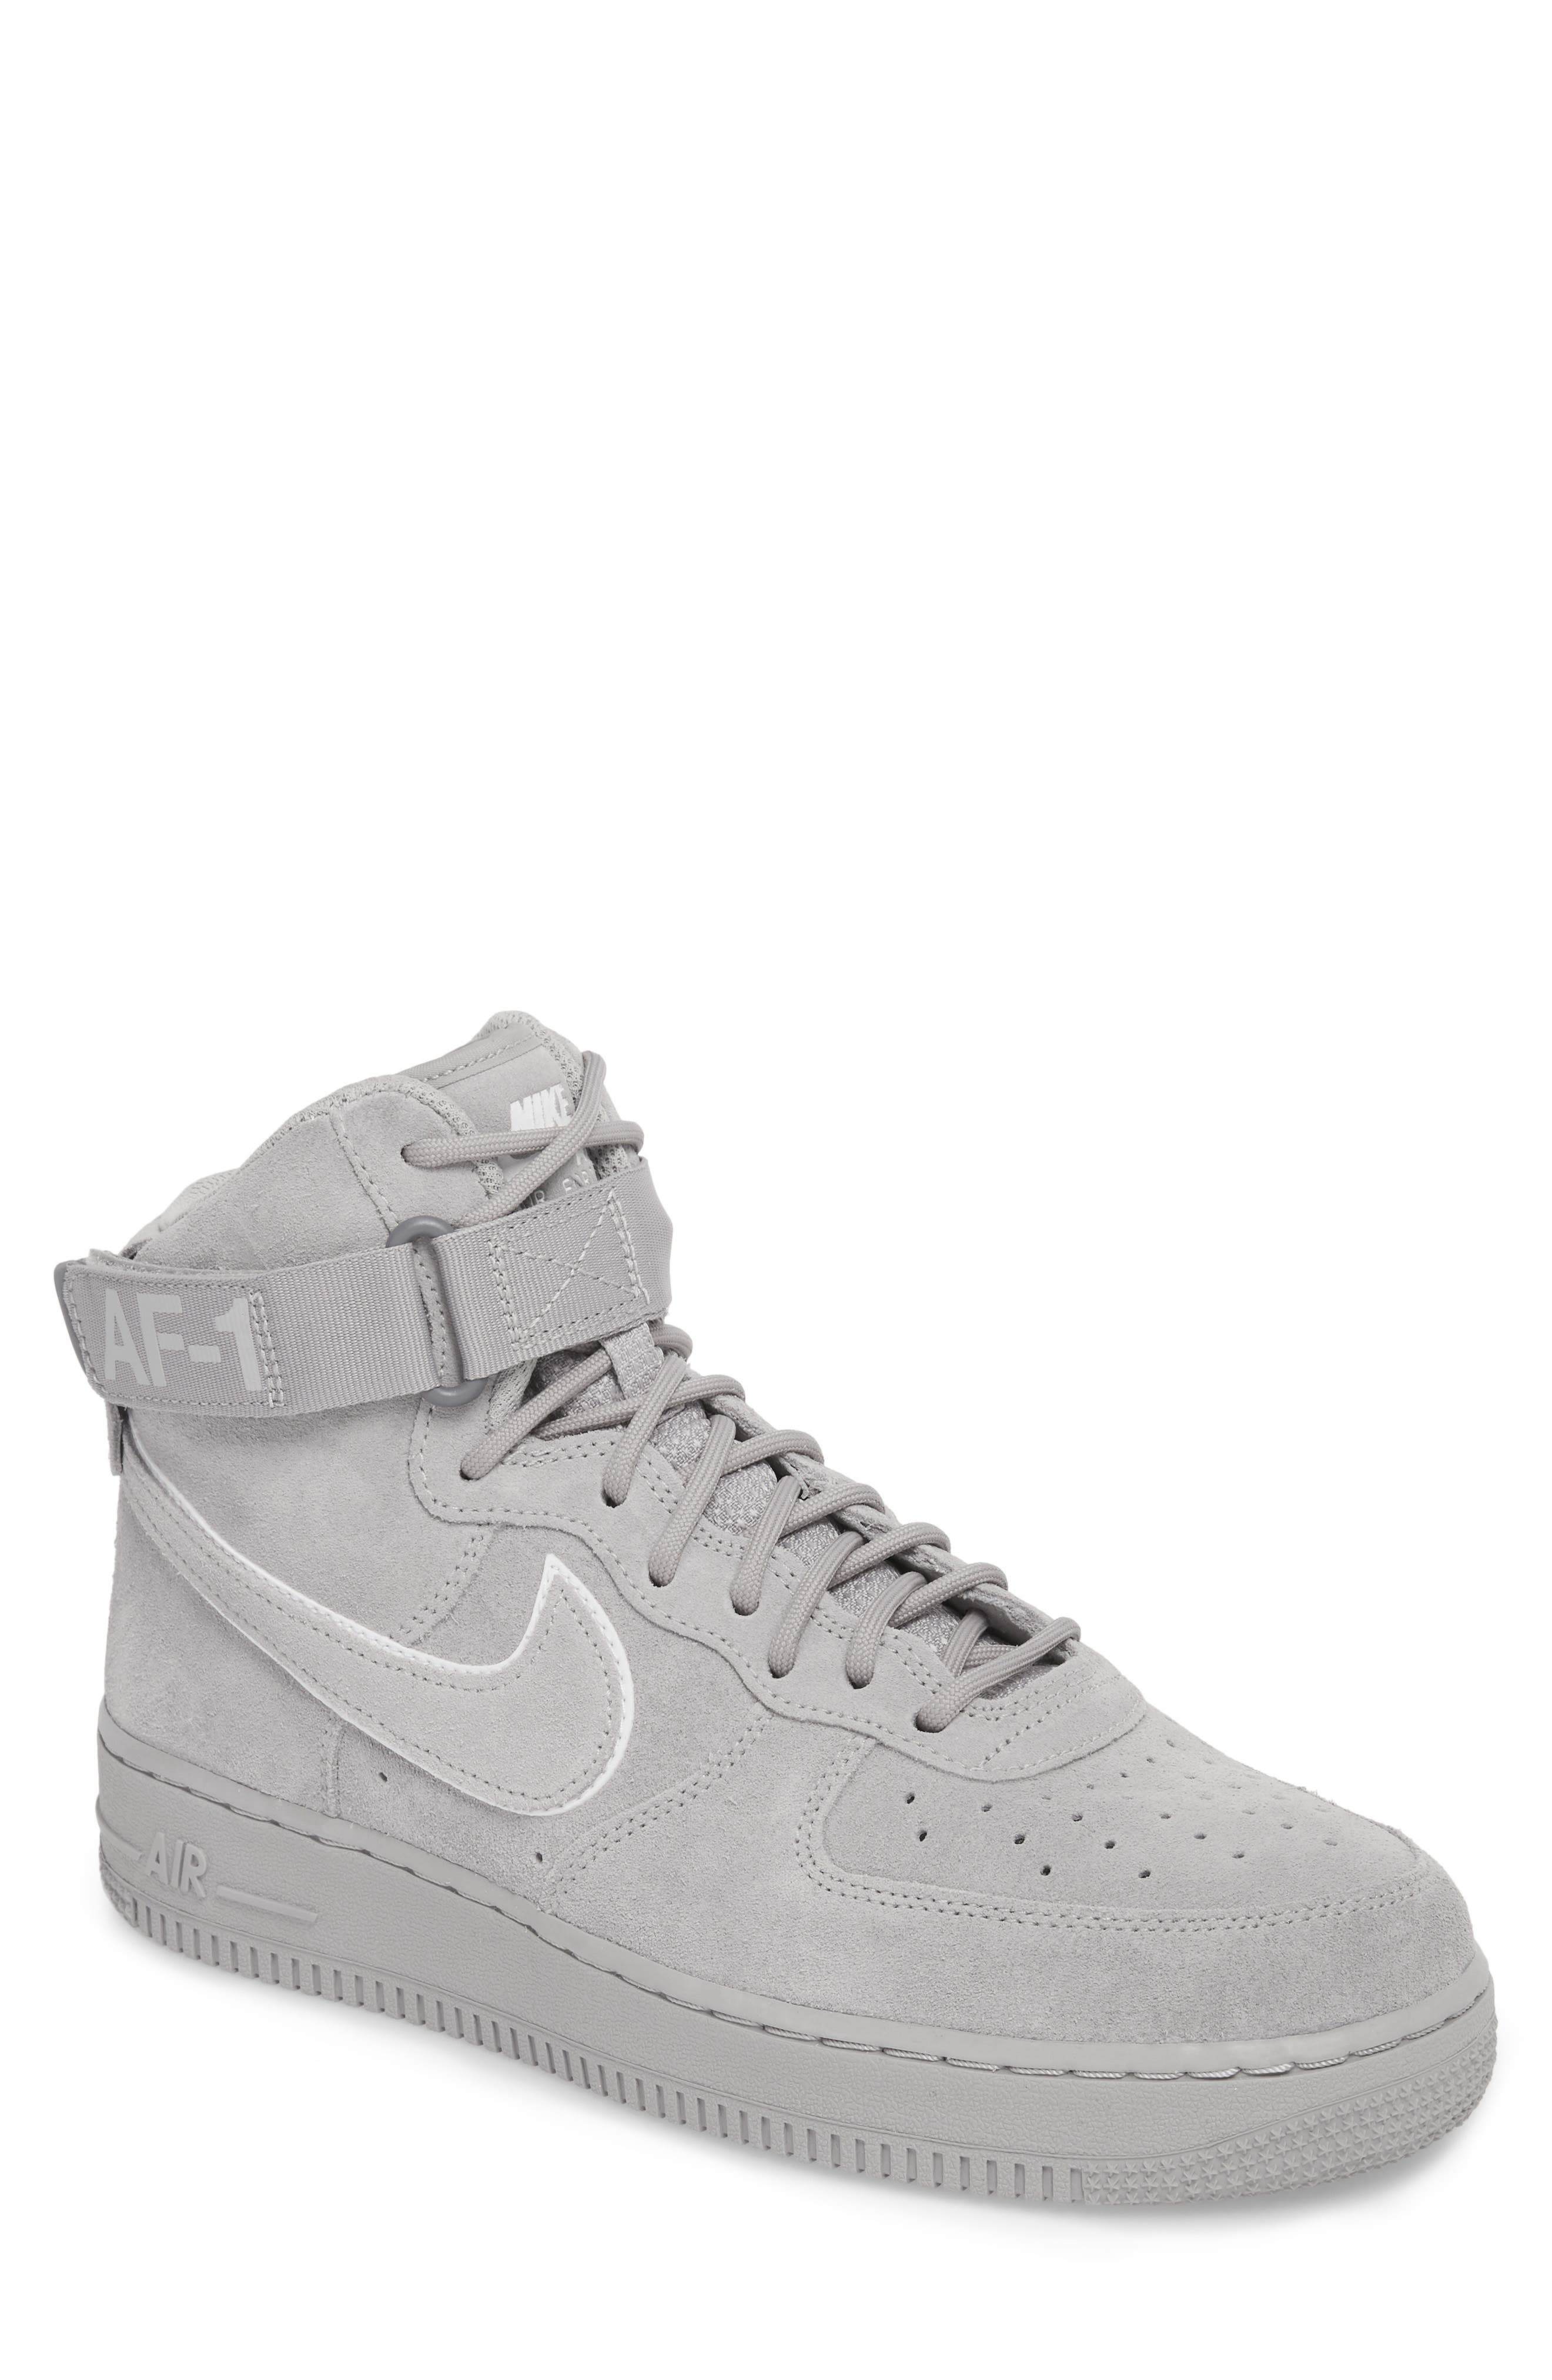 Air Force 1 High '07 LV8 Suede Sneaker,                             Main thumbnail 1, color,                             023